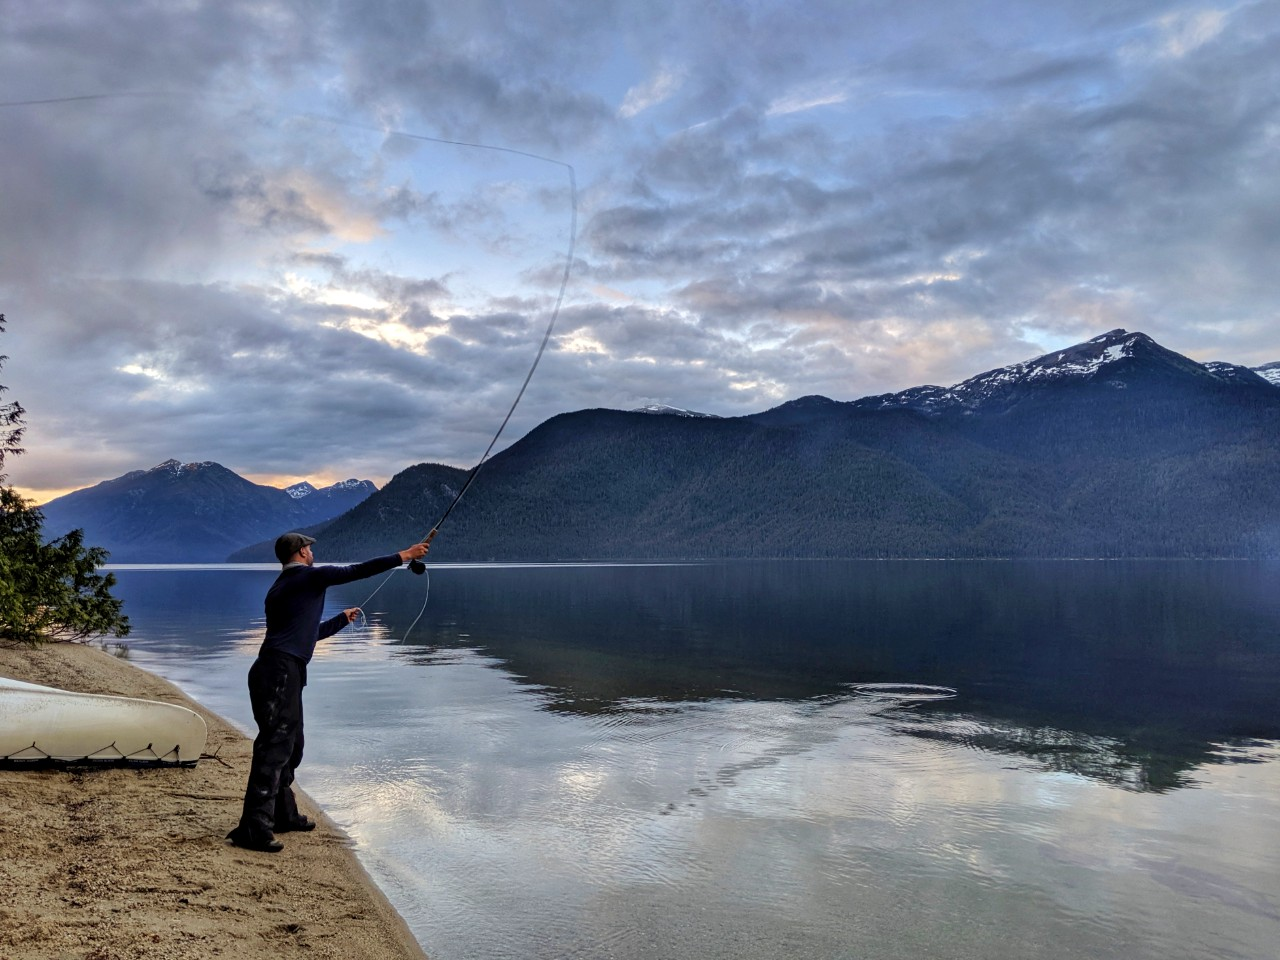 JR fishing with fly fishing pole on the shore of Murtle Lake with mountains behind and calm lake surface